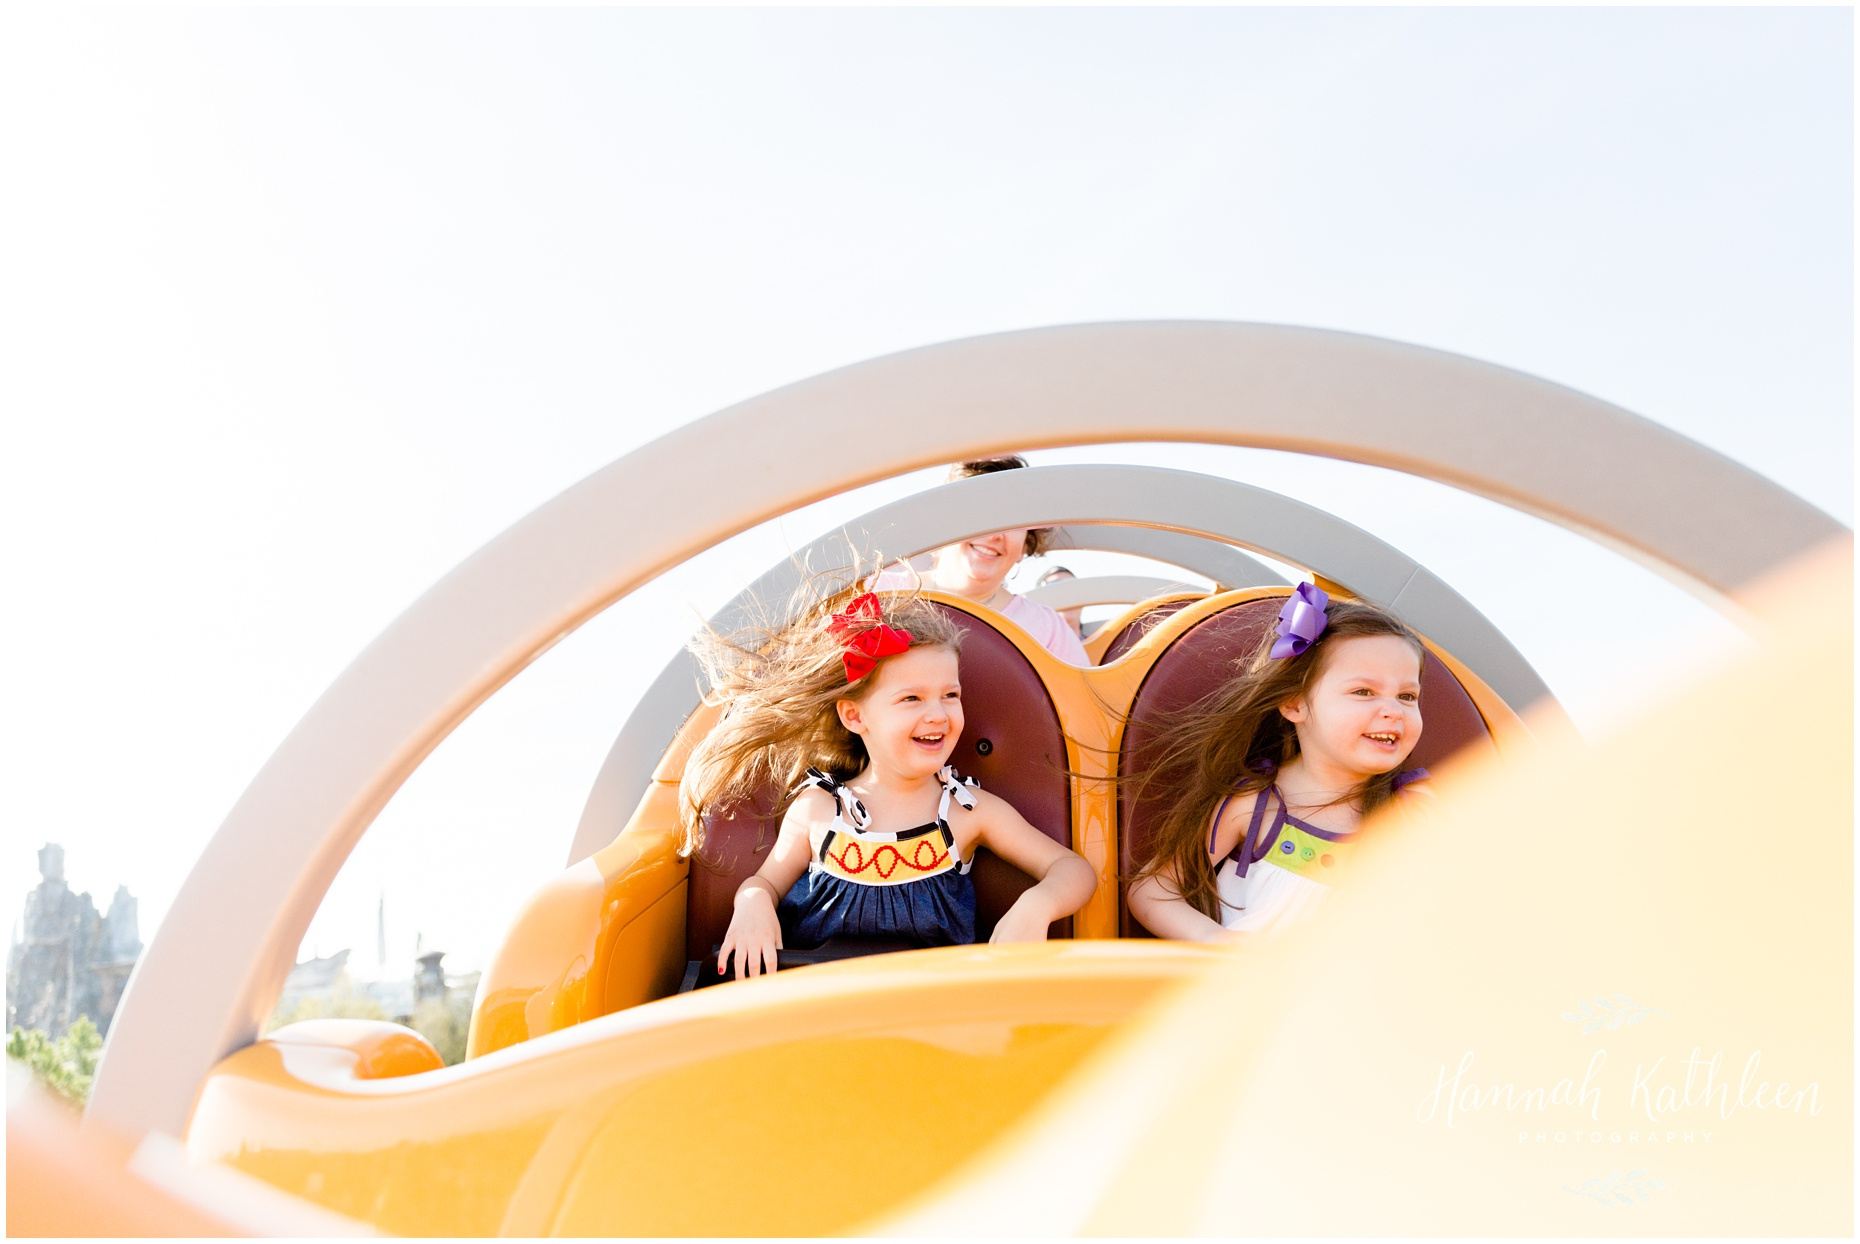 Sandy_Hollywood_Studios_Toy_Story_Land_Disney_Family_Photographer